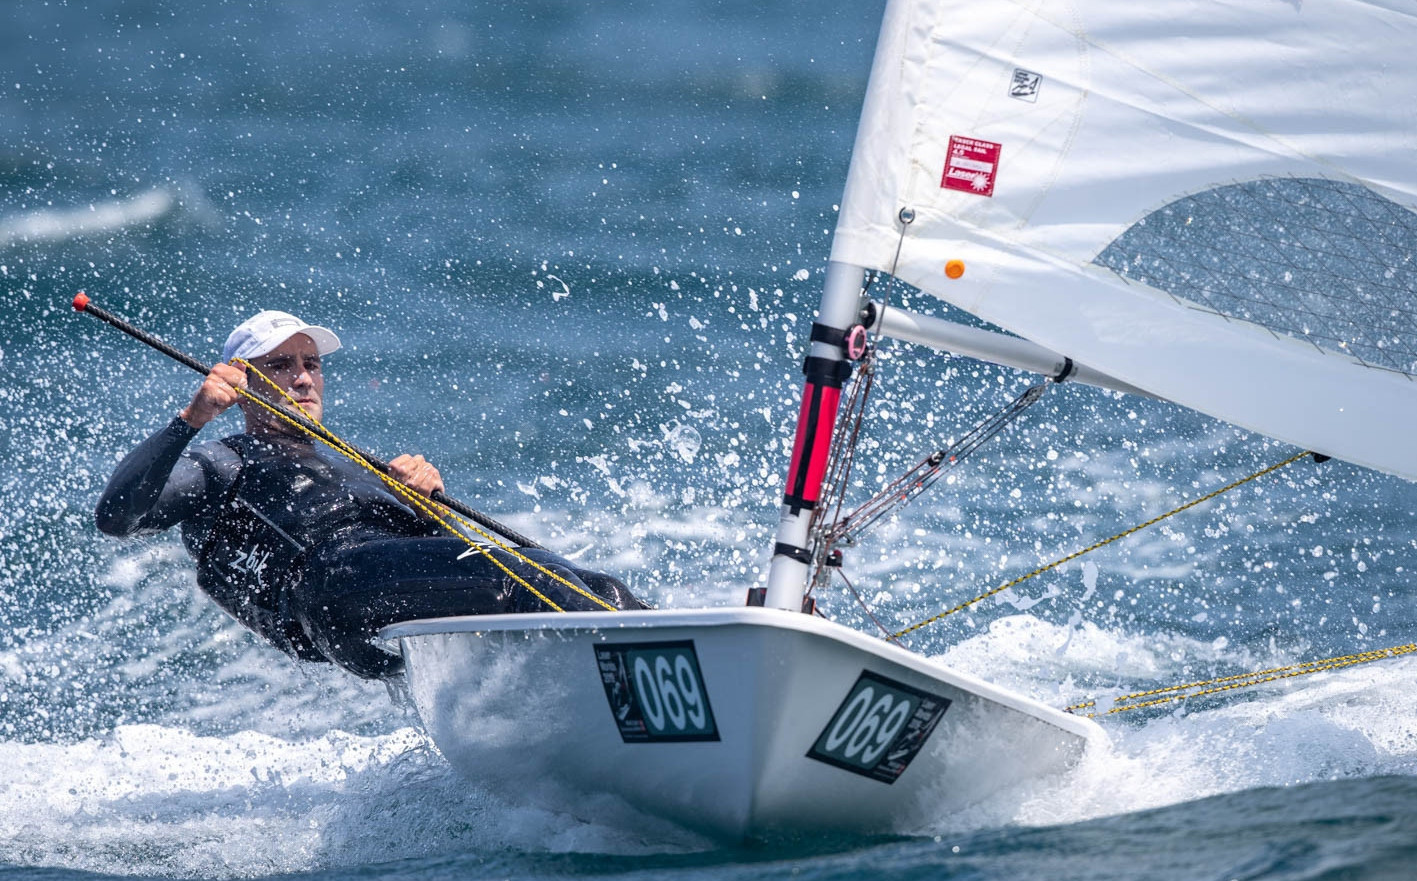 Perfect day sees Meech top qualifying at Laser Men's World Championship